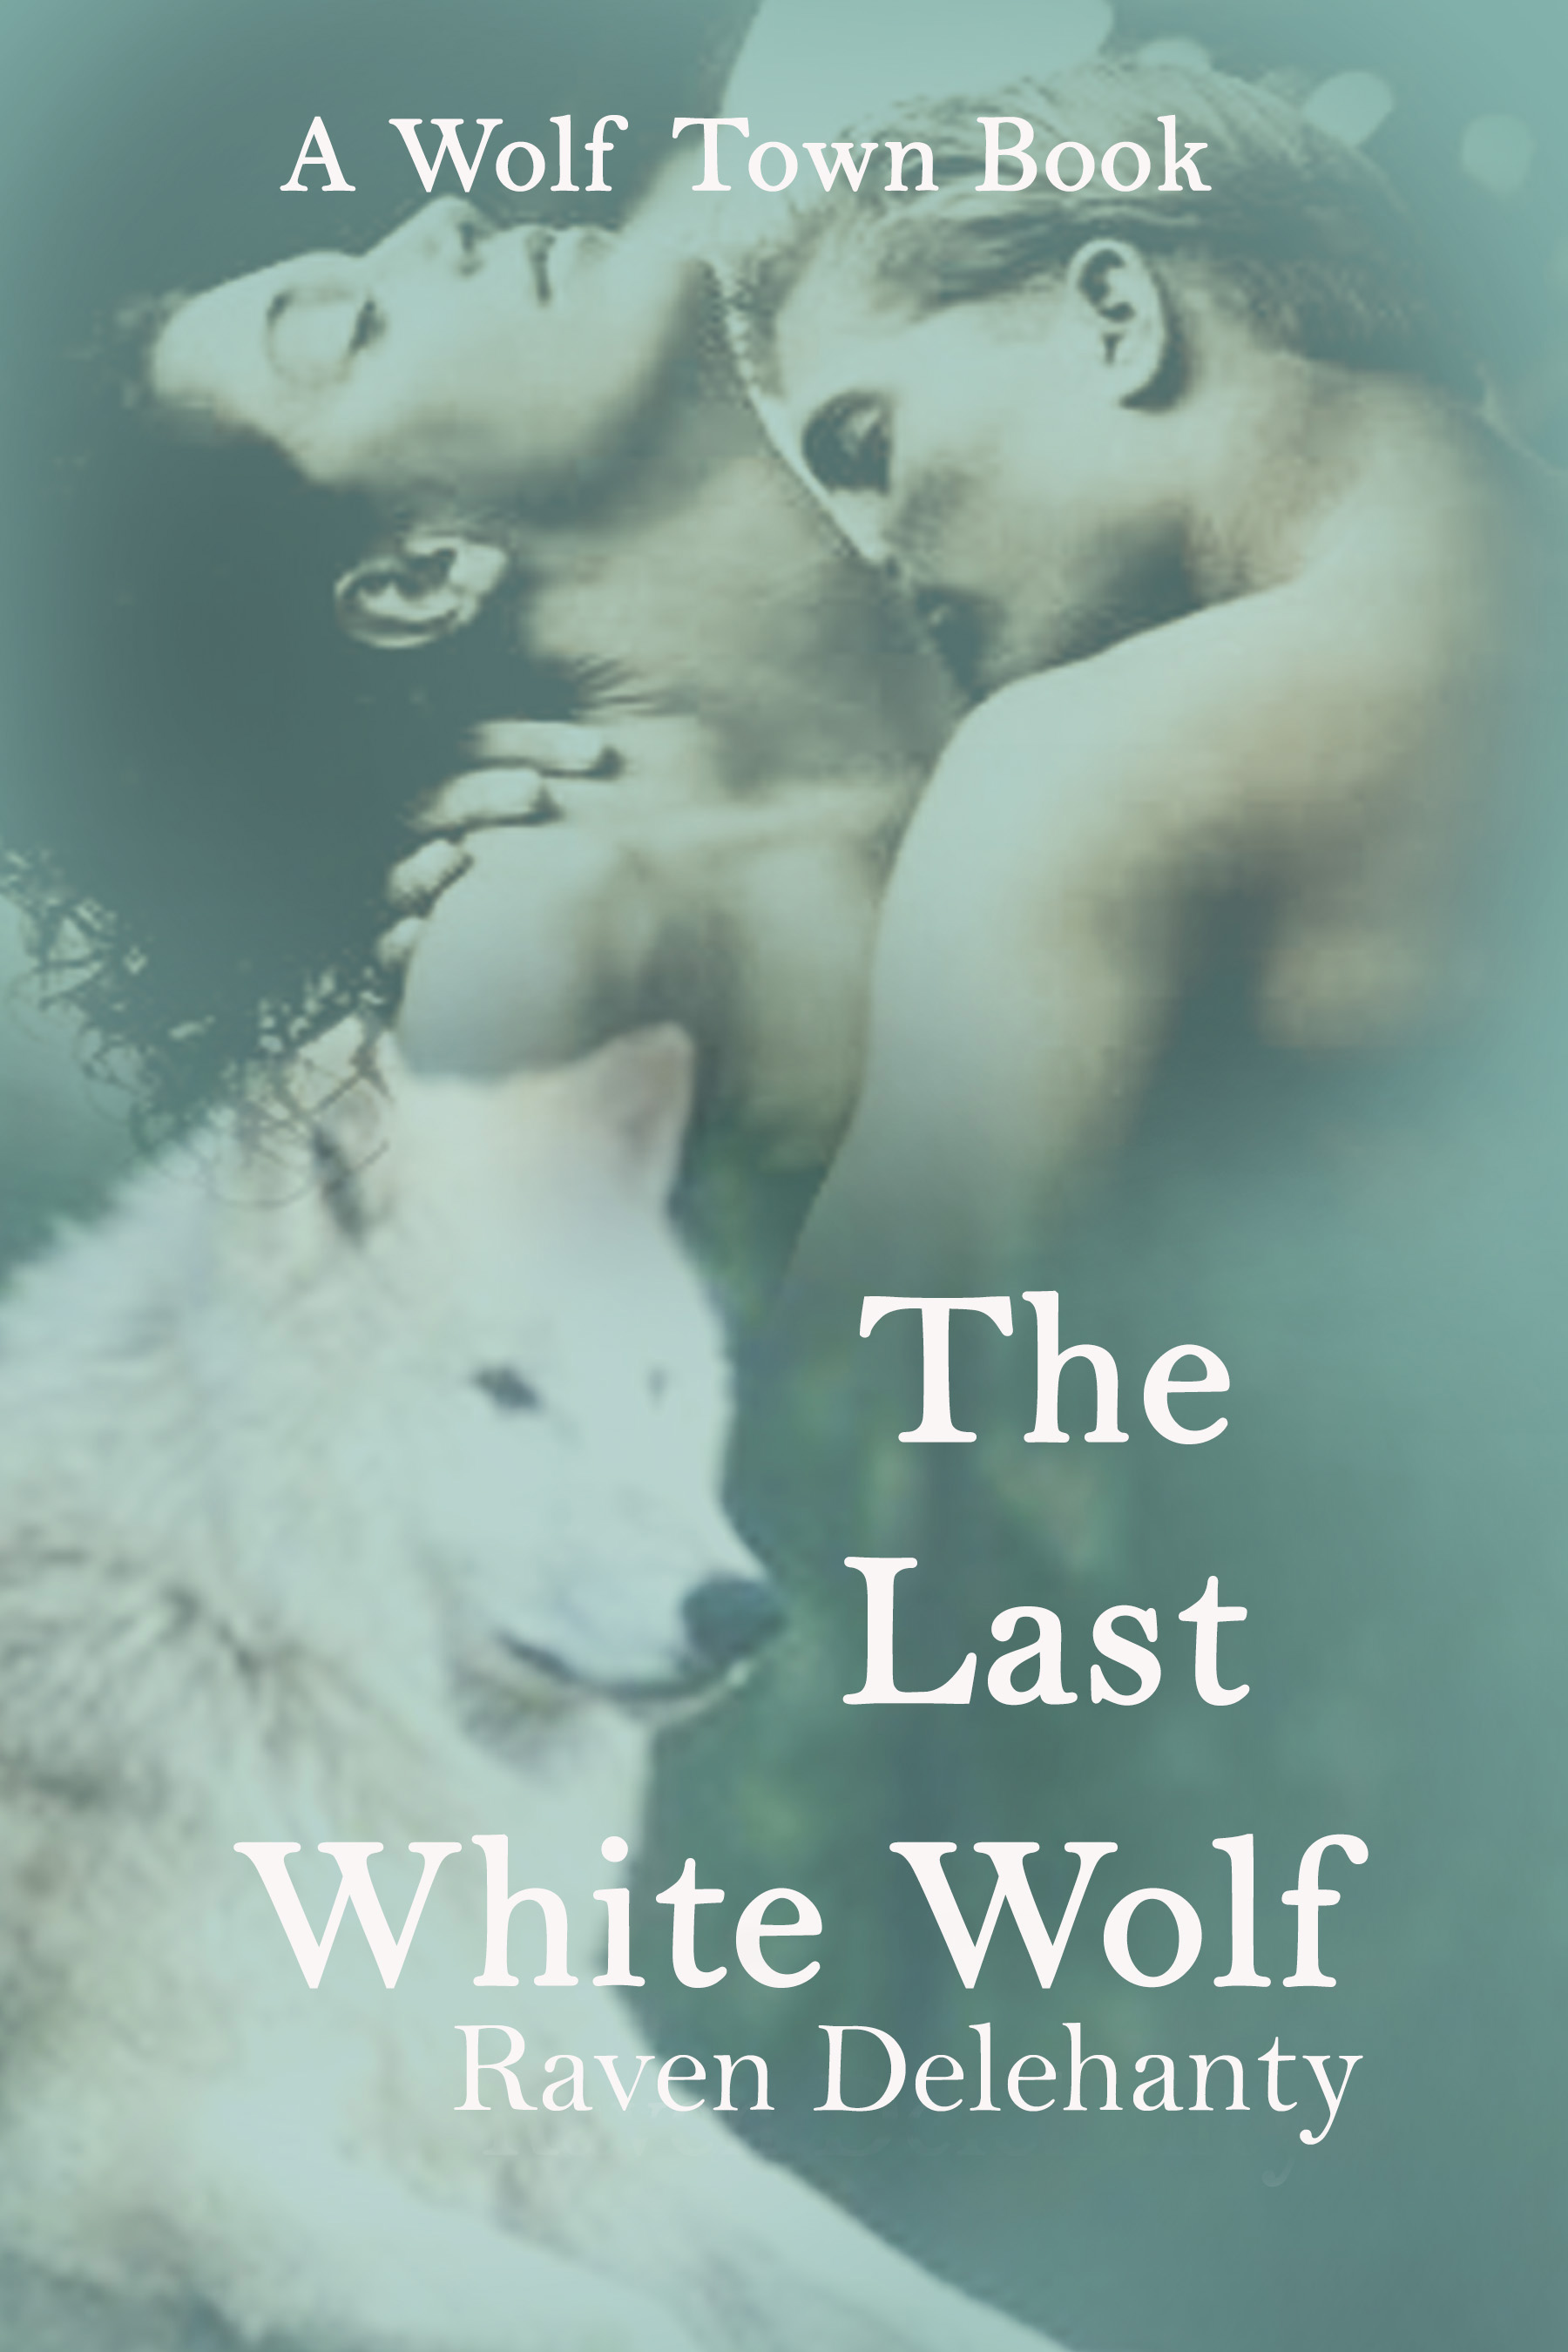 The Last White Wolf by Raven Delehanty